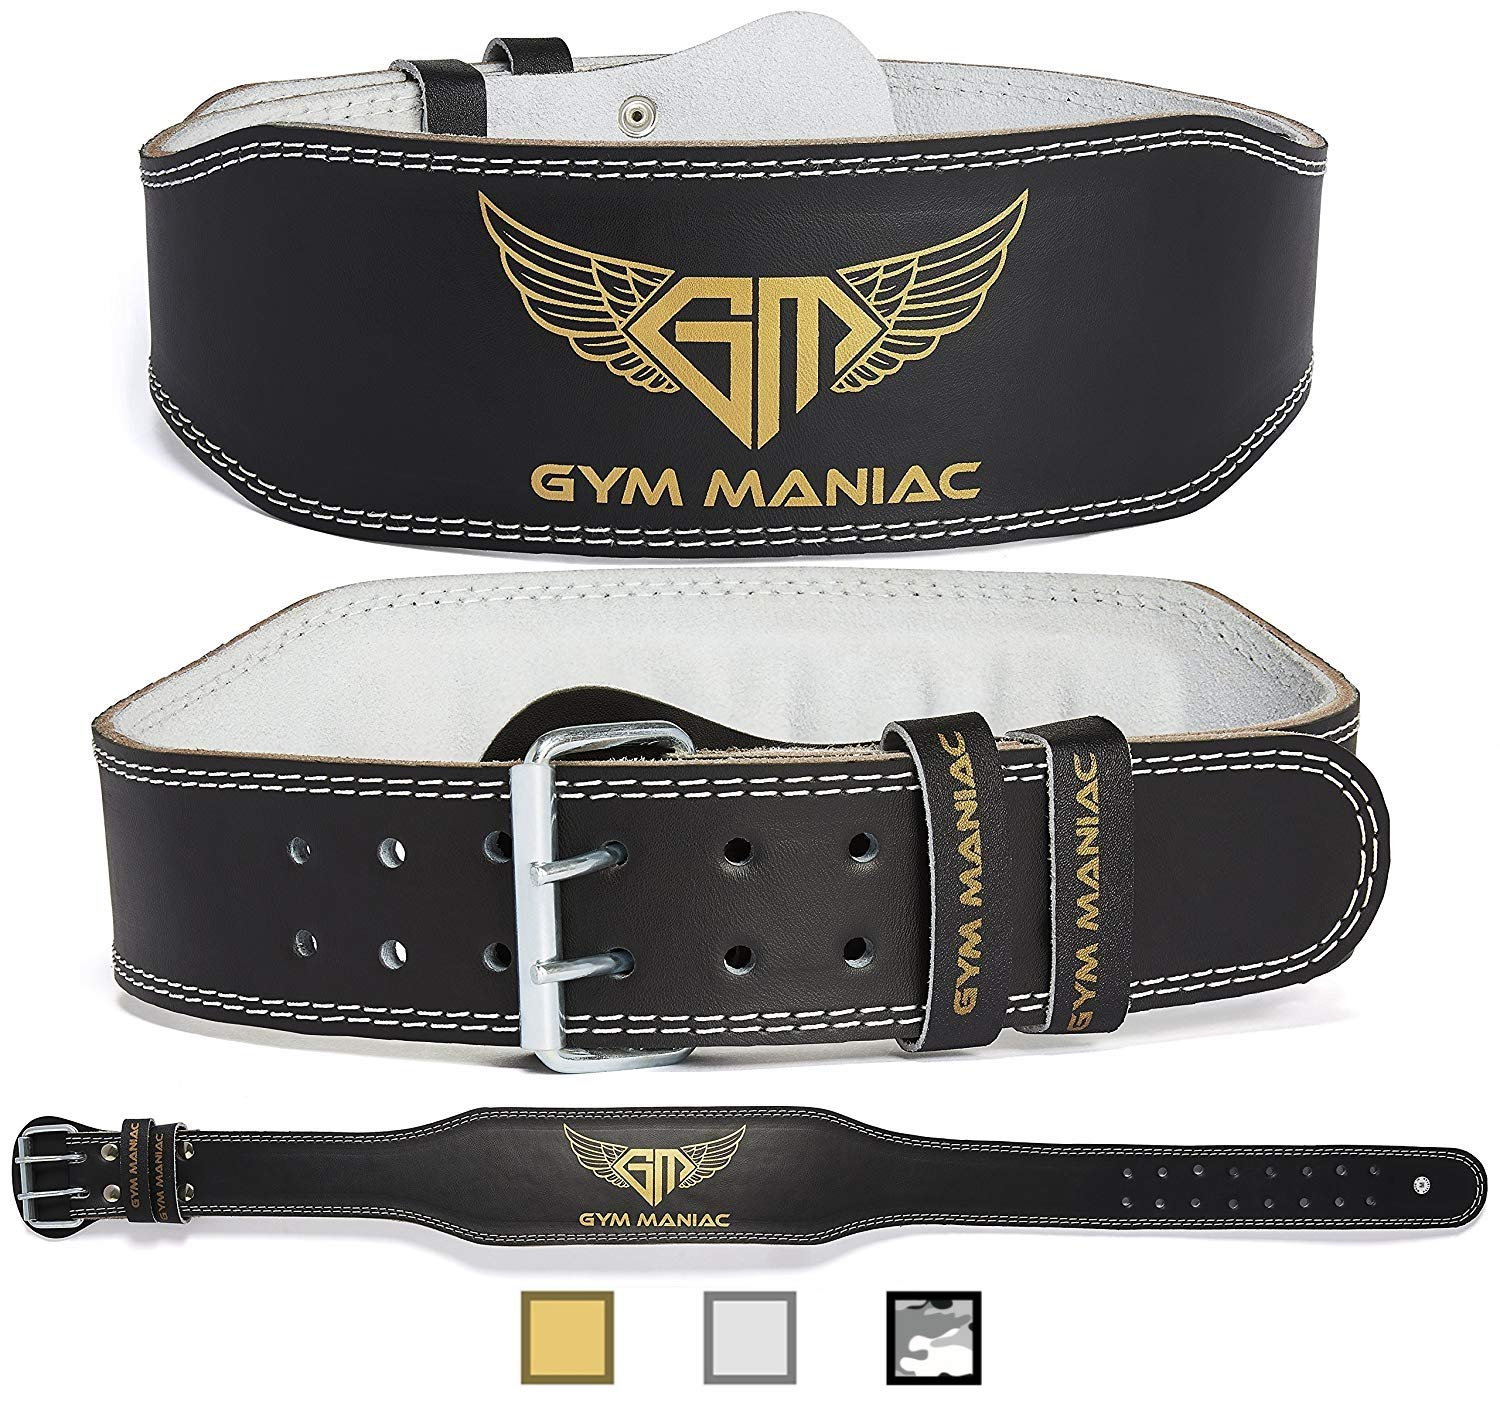 Gym Maniac Weight Lifting Waist Gym Belt | Adjustable Size, 2 Prong Buckle, Comfy Suede, Reinforced Stitching | Support Your Back & Alleviate Pains (Gold, Small)